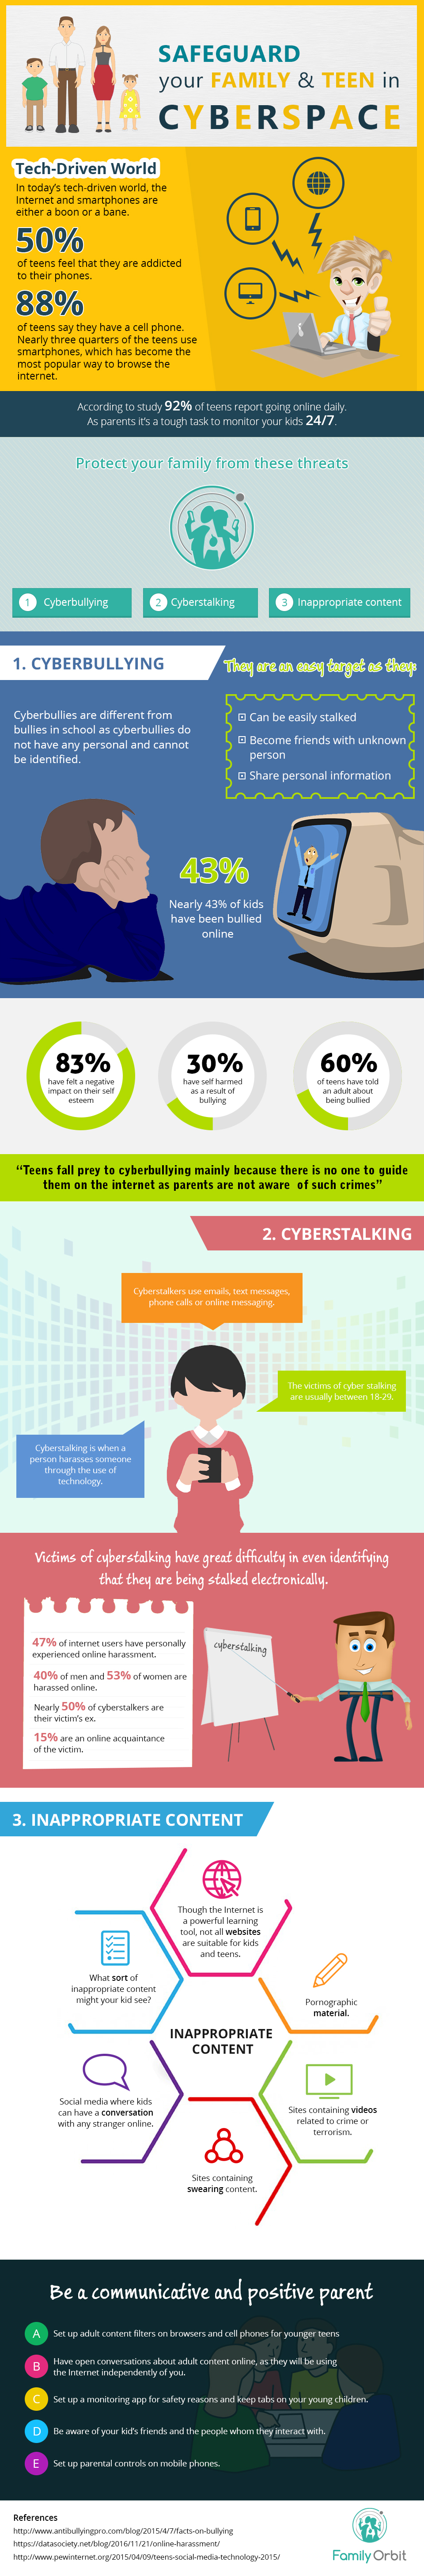 safeguard your family in the cyberspace infographic